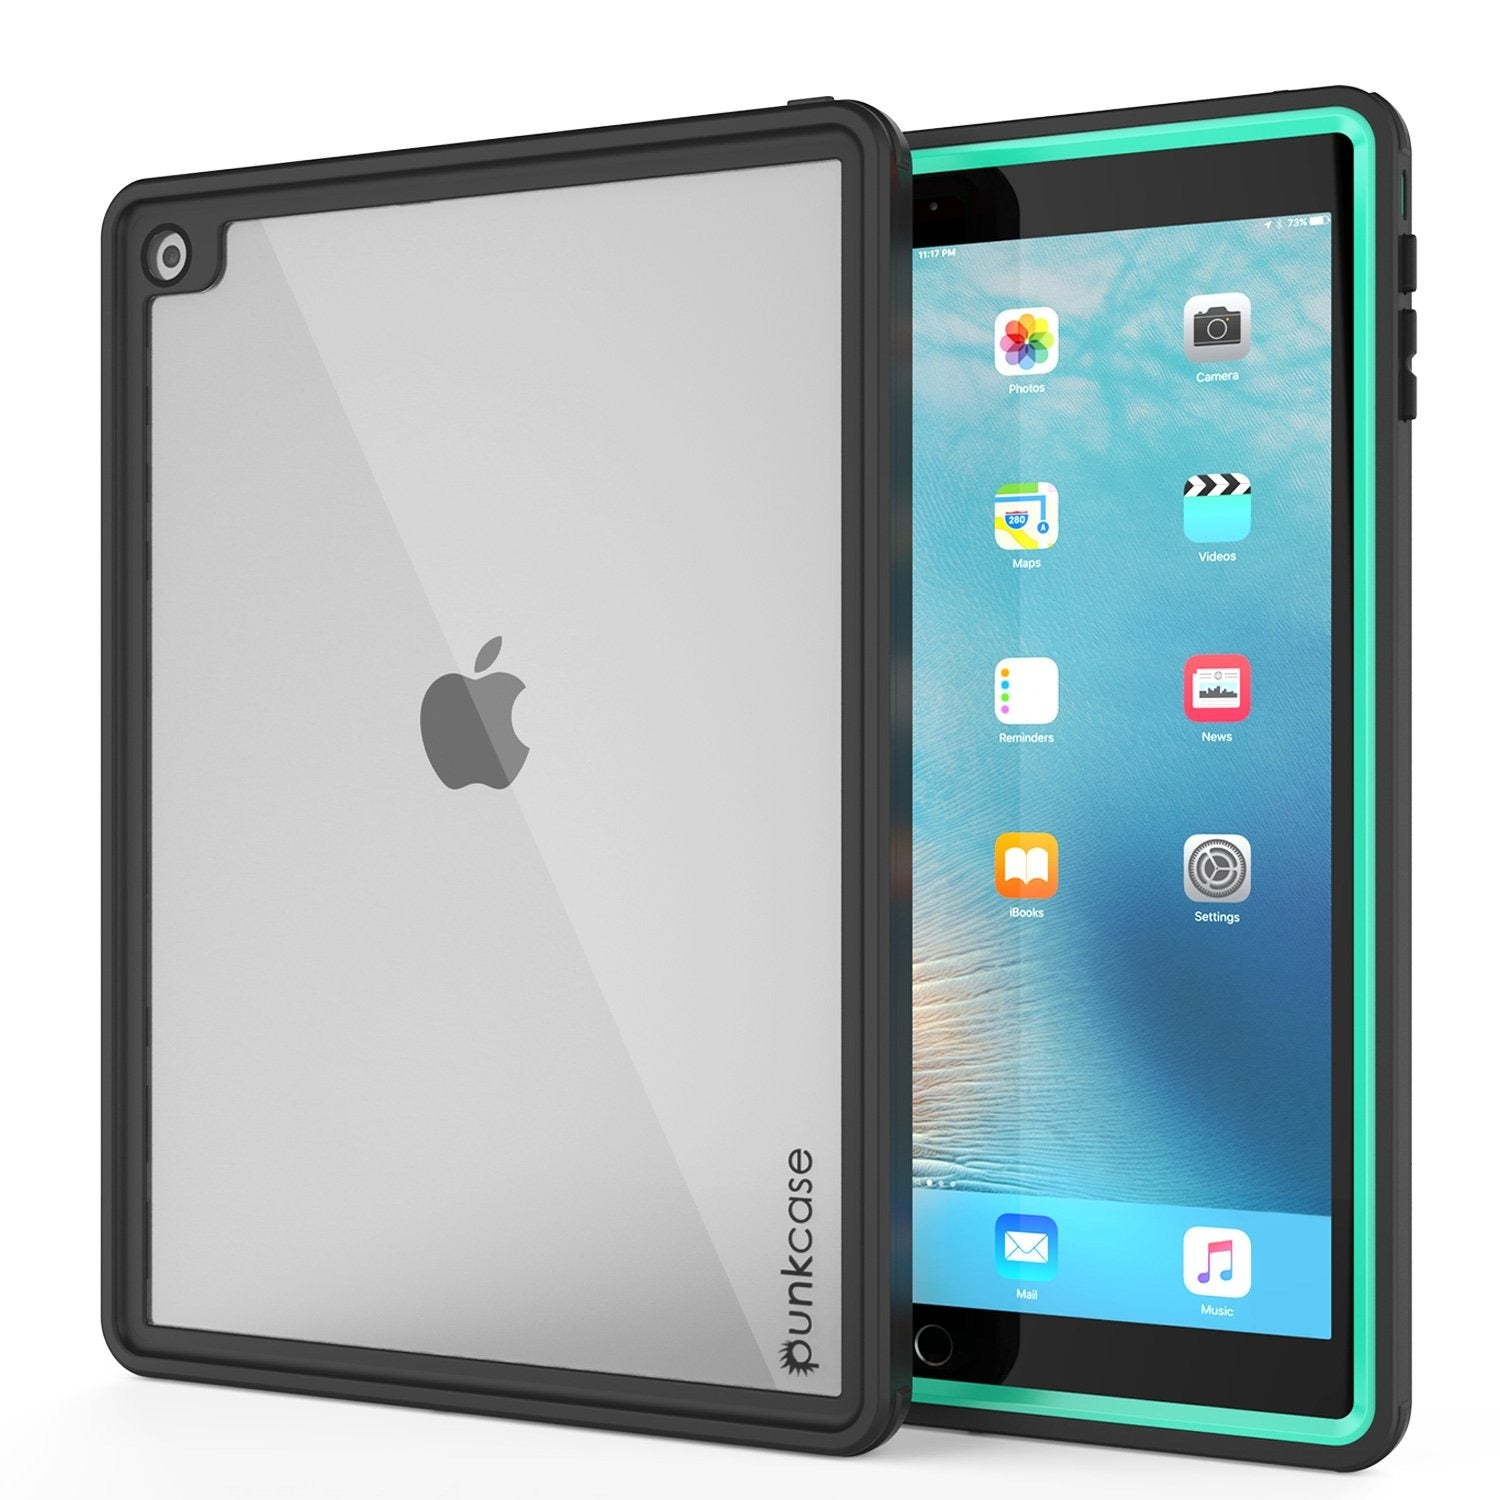 Punkcase iPad Pro 9.7 Case [CRYSTAL Series], Waterproof, Ultra-Thin Cover [Shockproof] [Dustproof] with Built-in Screen Protector [Teal]